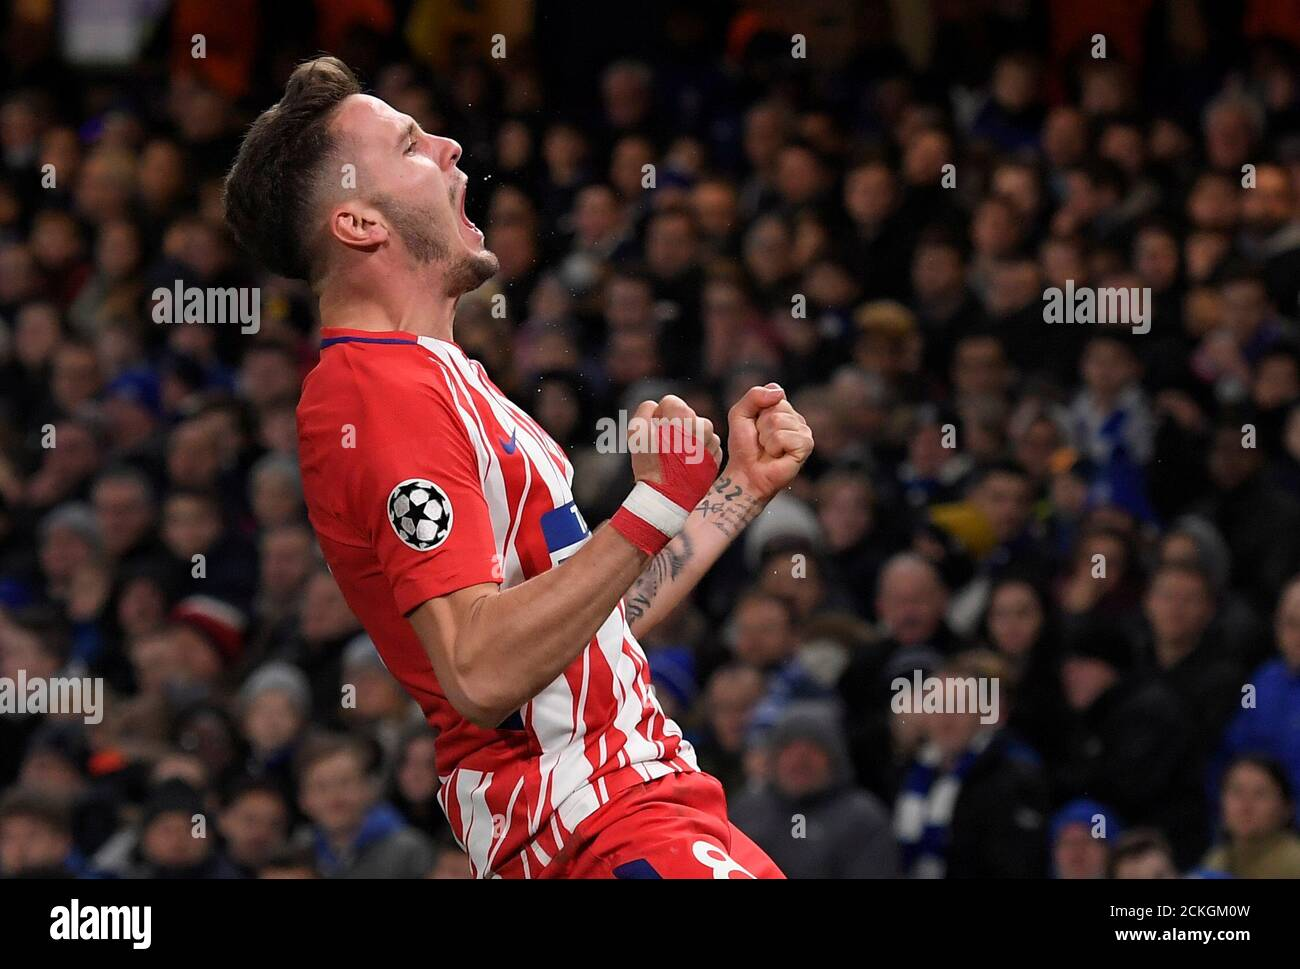 Soccer Football - Champions League - Chelsea vs Atletico Madrid - Stamford  Bridge, London, Britain - December 5, 2017 Atletico Madrid's Saul Niguez  celebrates scoring their first goal REUTERS/Toby Melville Stock Photo -  Alamy